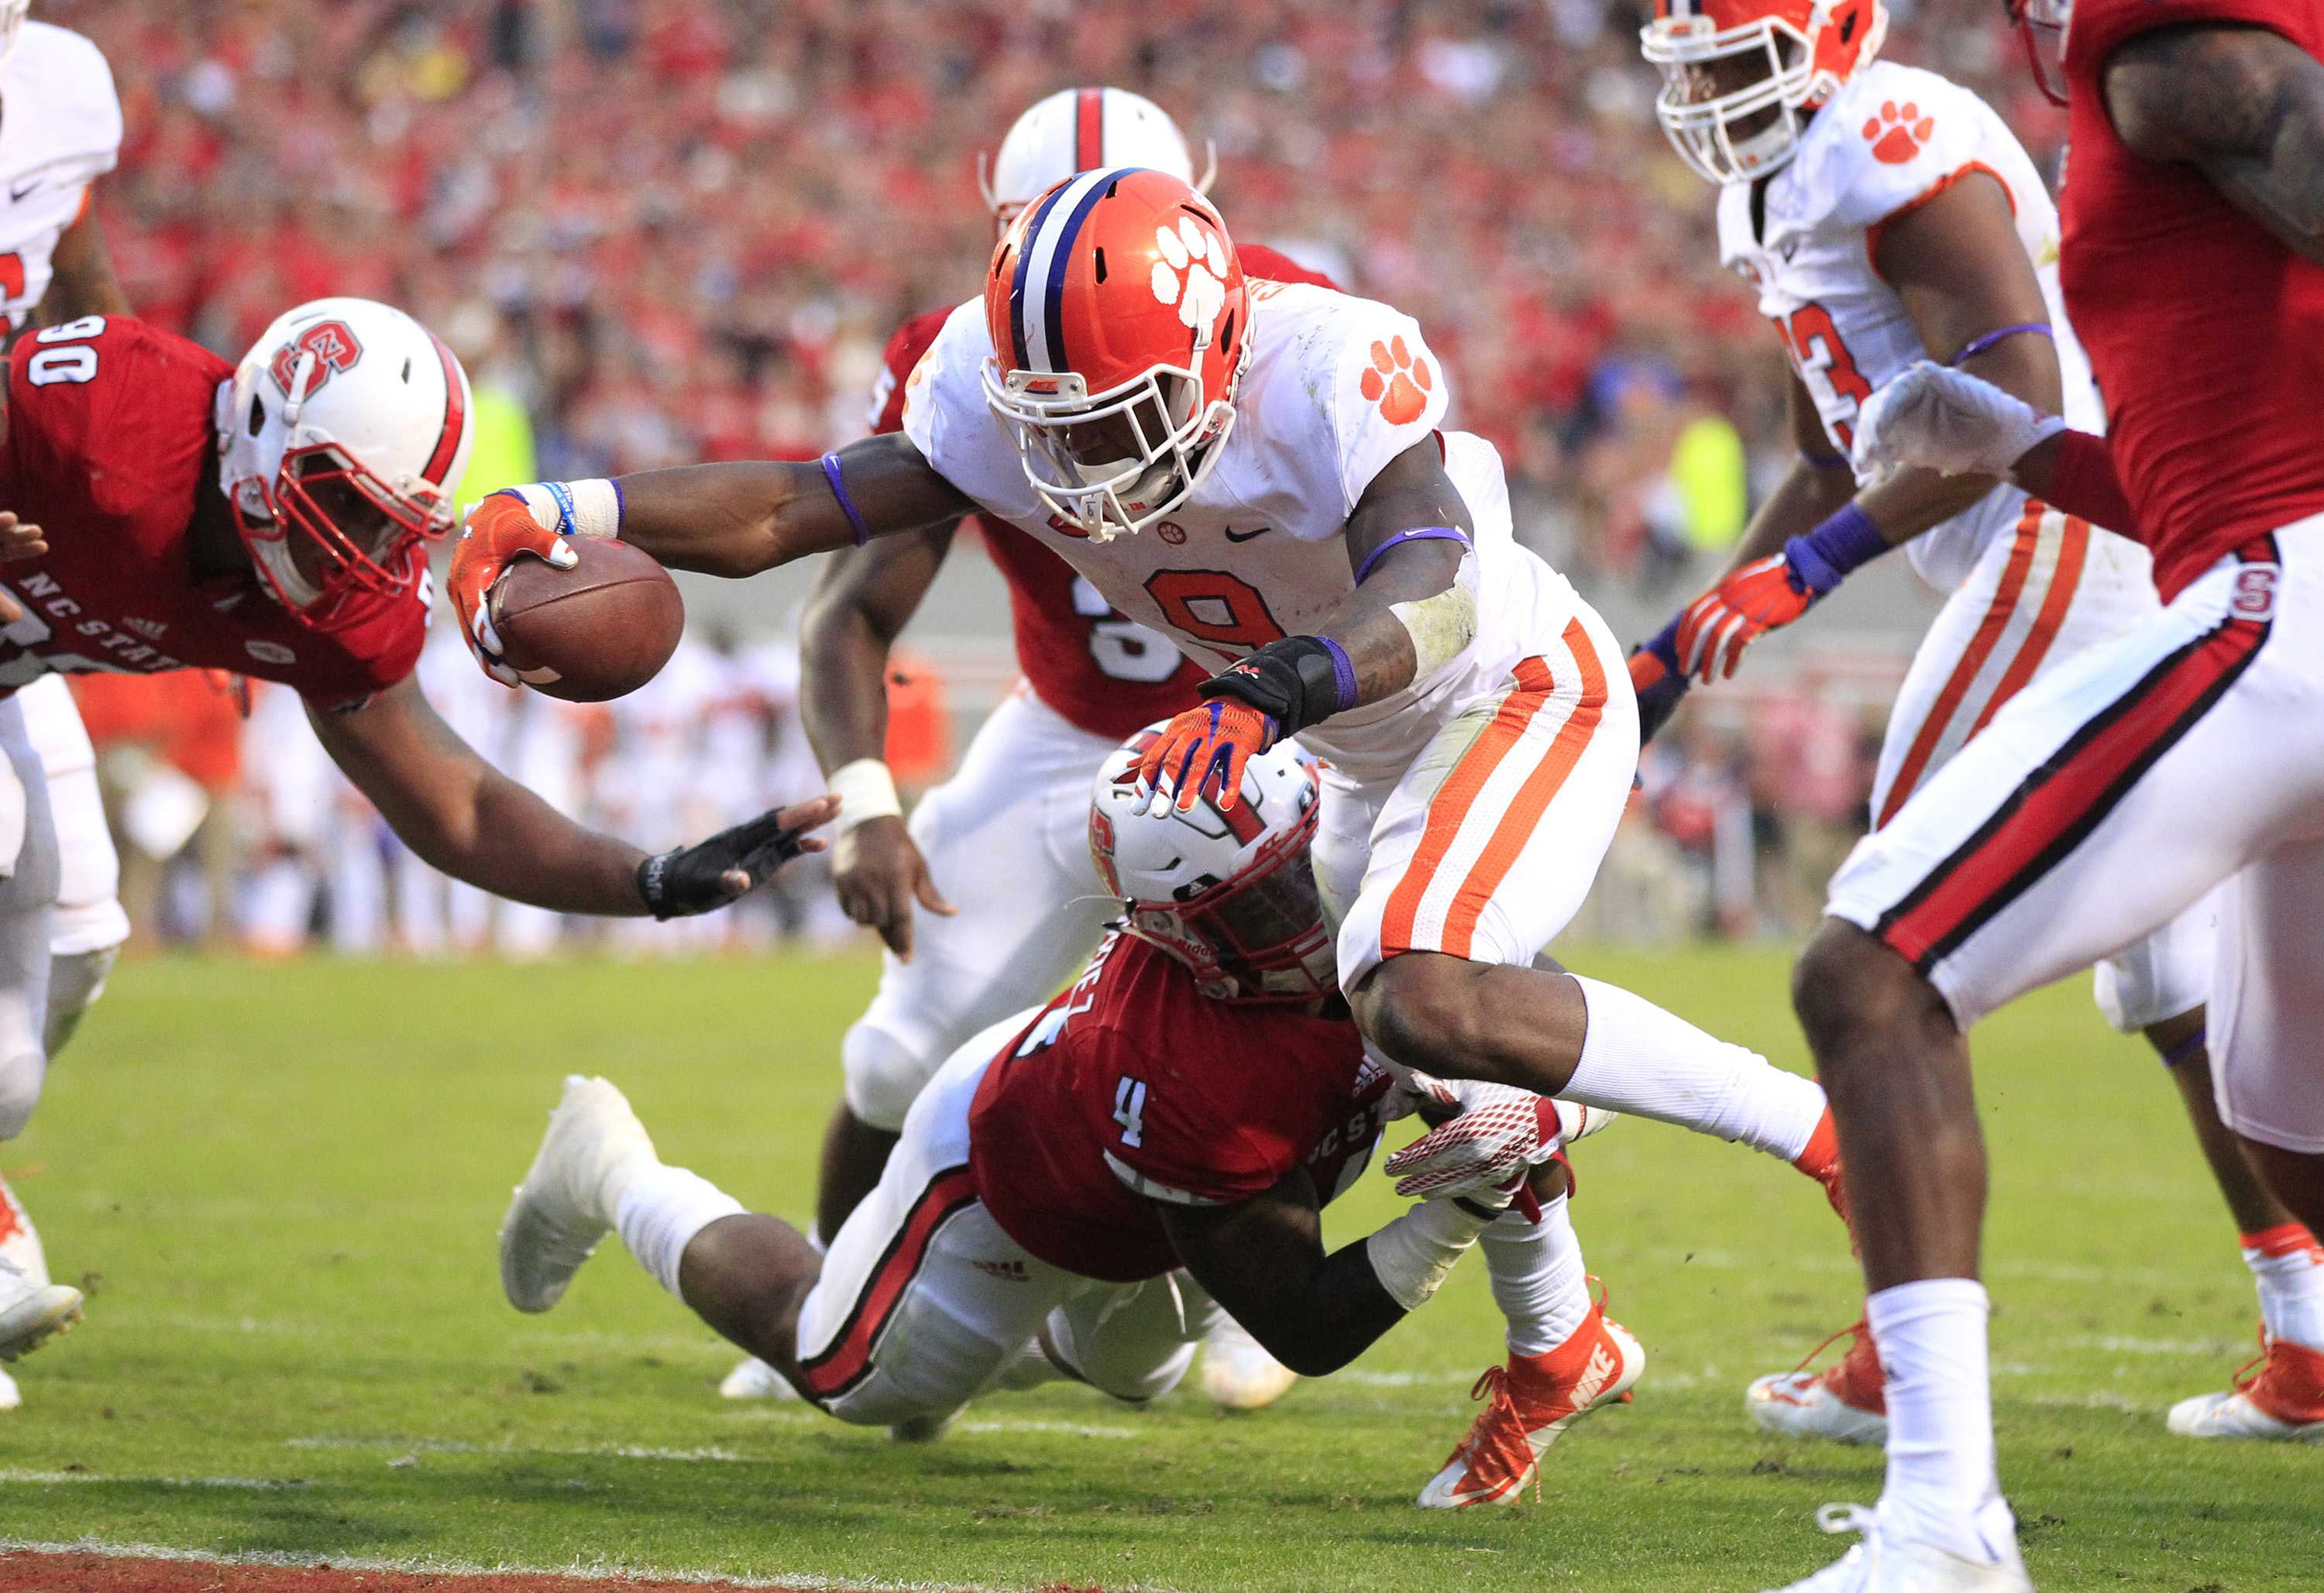 Clemson running back Wayne Gallman (9) scores on a 3-yard touchdown run during the second half against North Carolina State at Carter-Finley Stadium in Raleigh, N.C., on Saturday, Oct. 31, 2015. Clemson won, 56-41. (Ethan Hyman/Raleigh News & Observer/TNS)